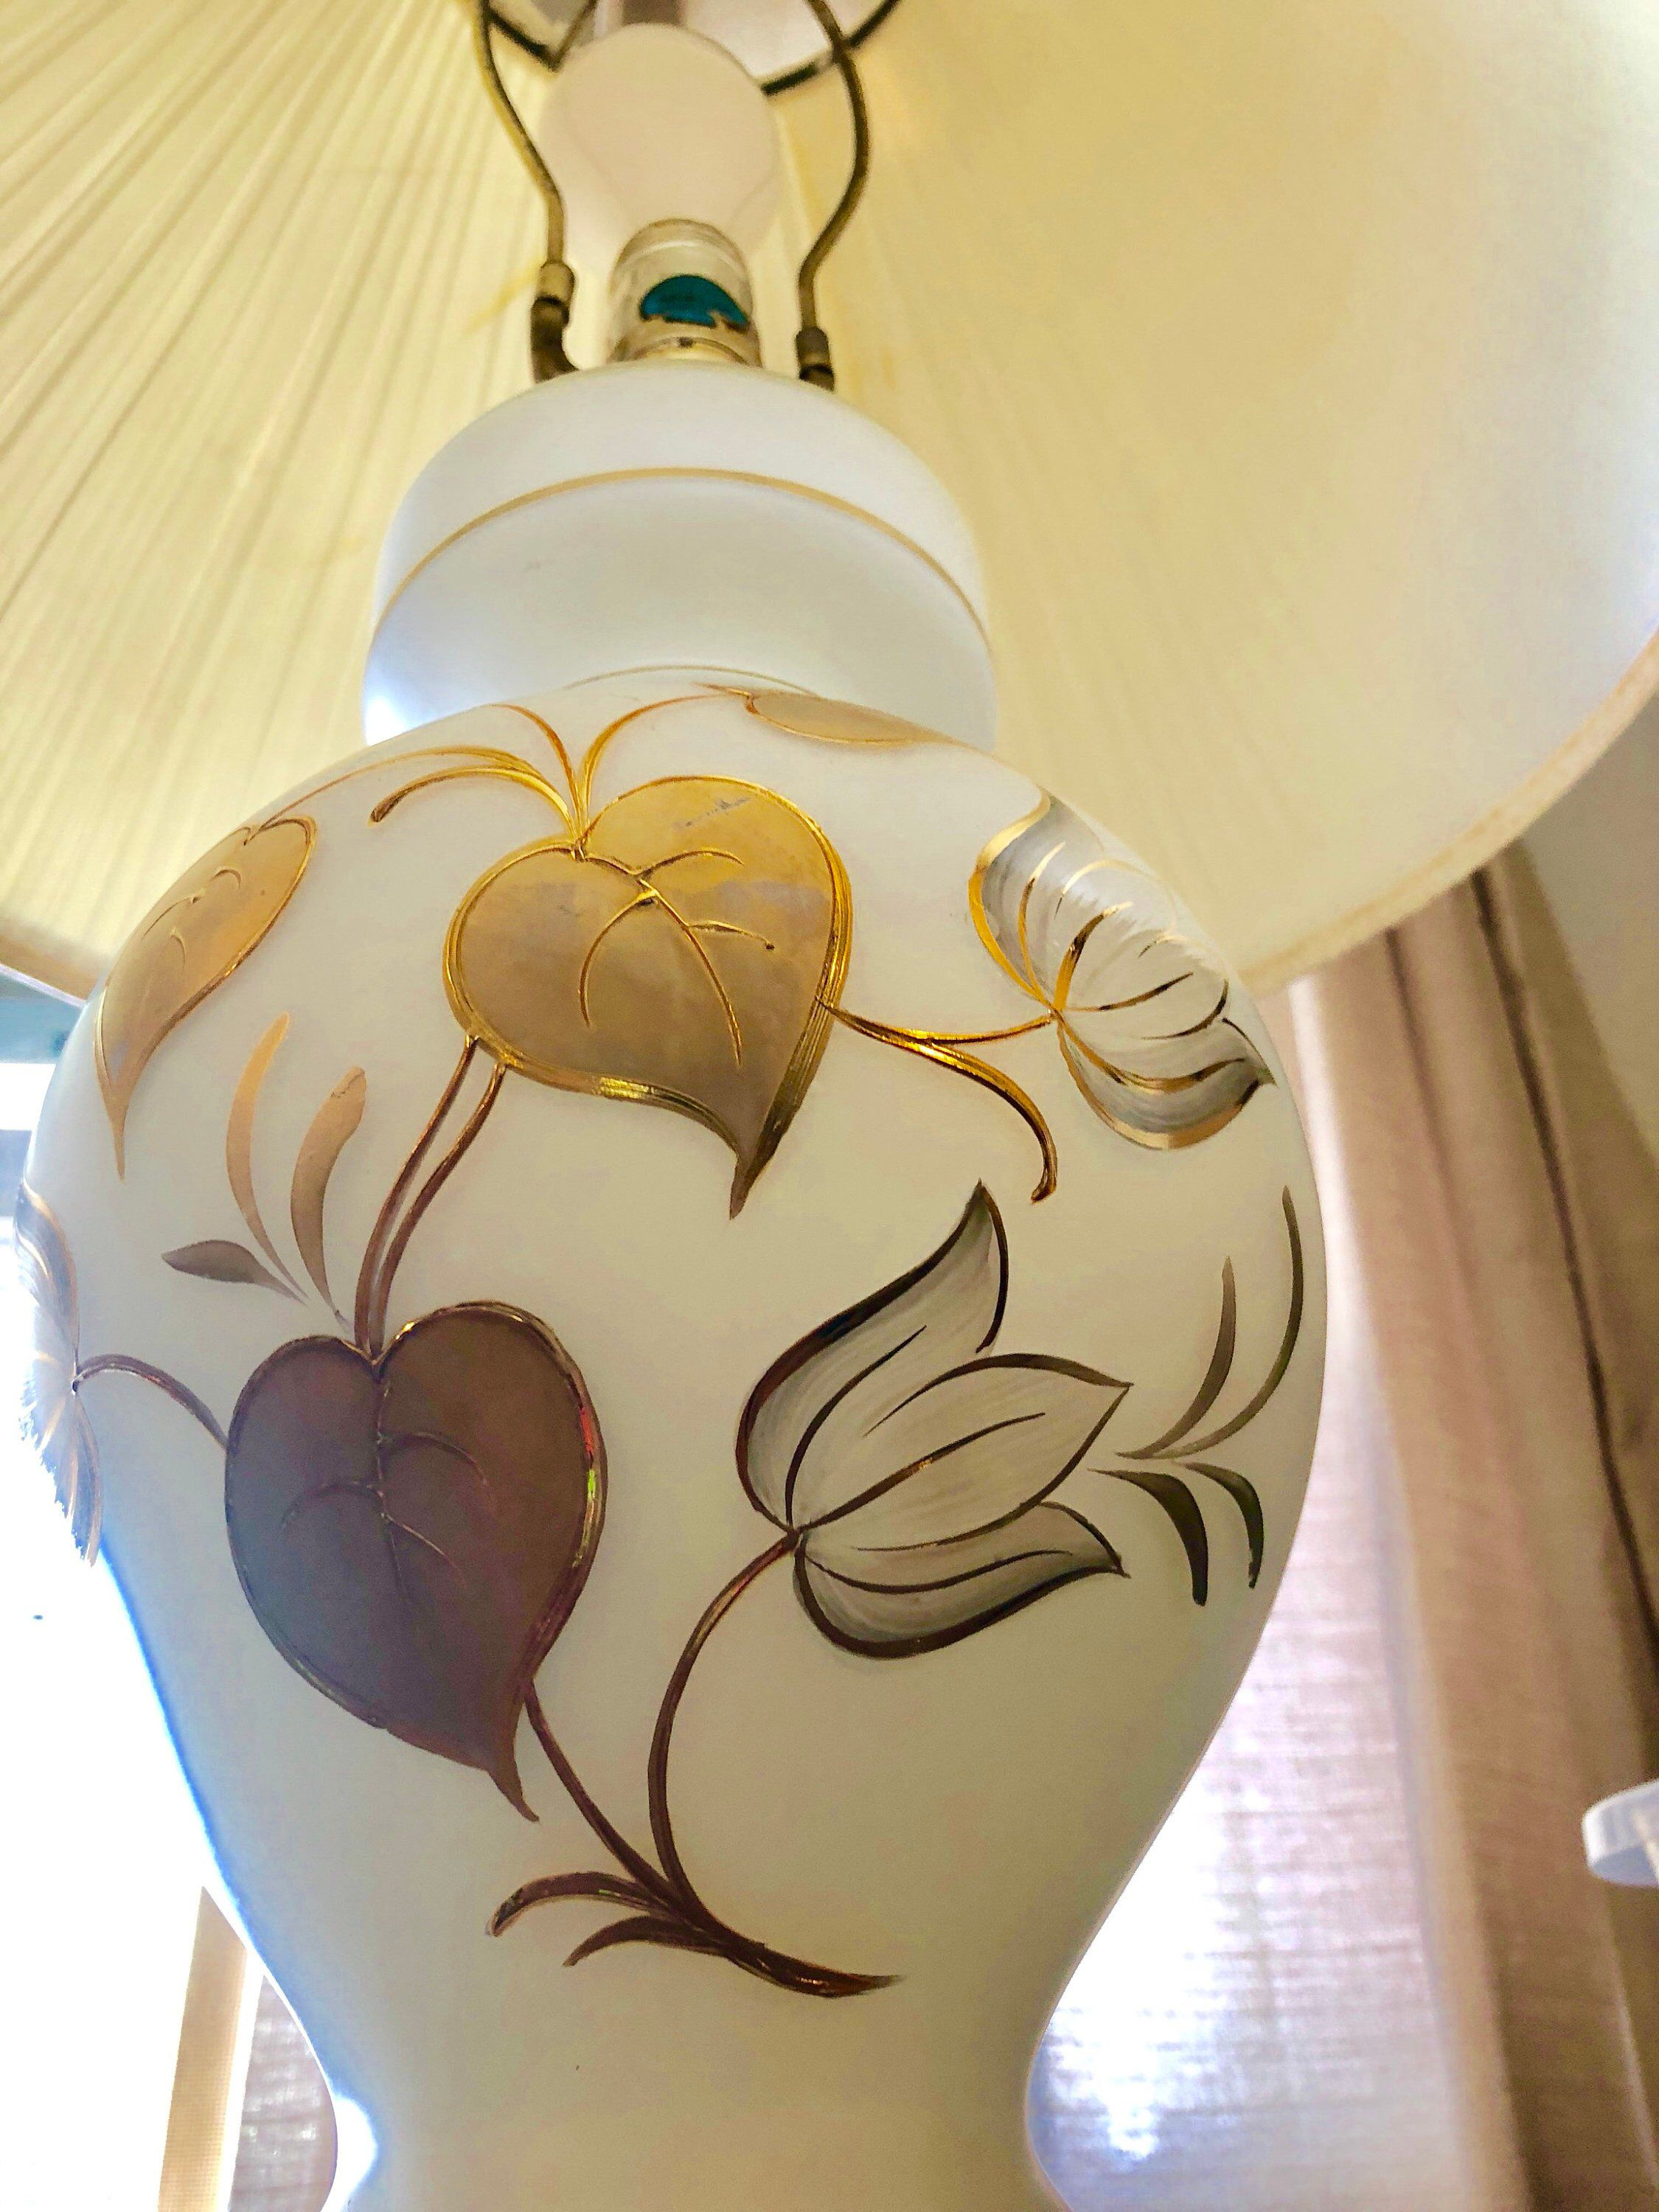 Tulip Bavarian Triplex Hand Blown Painted Lamp Painting Lamps Hand Blown White And Gold Decor